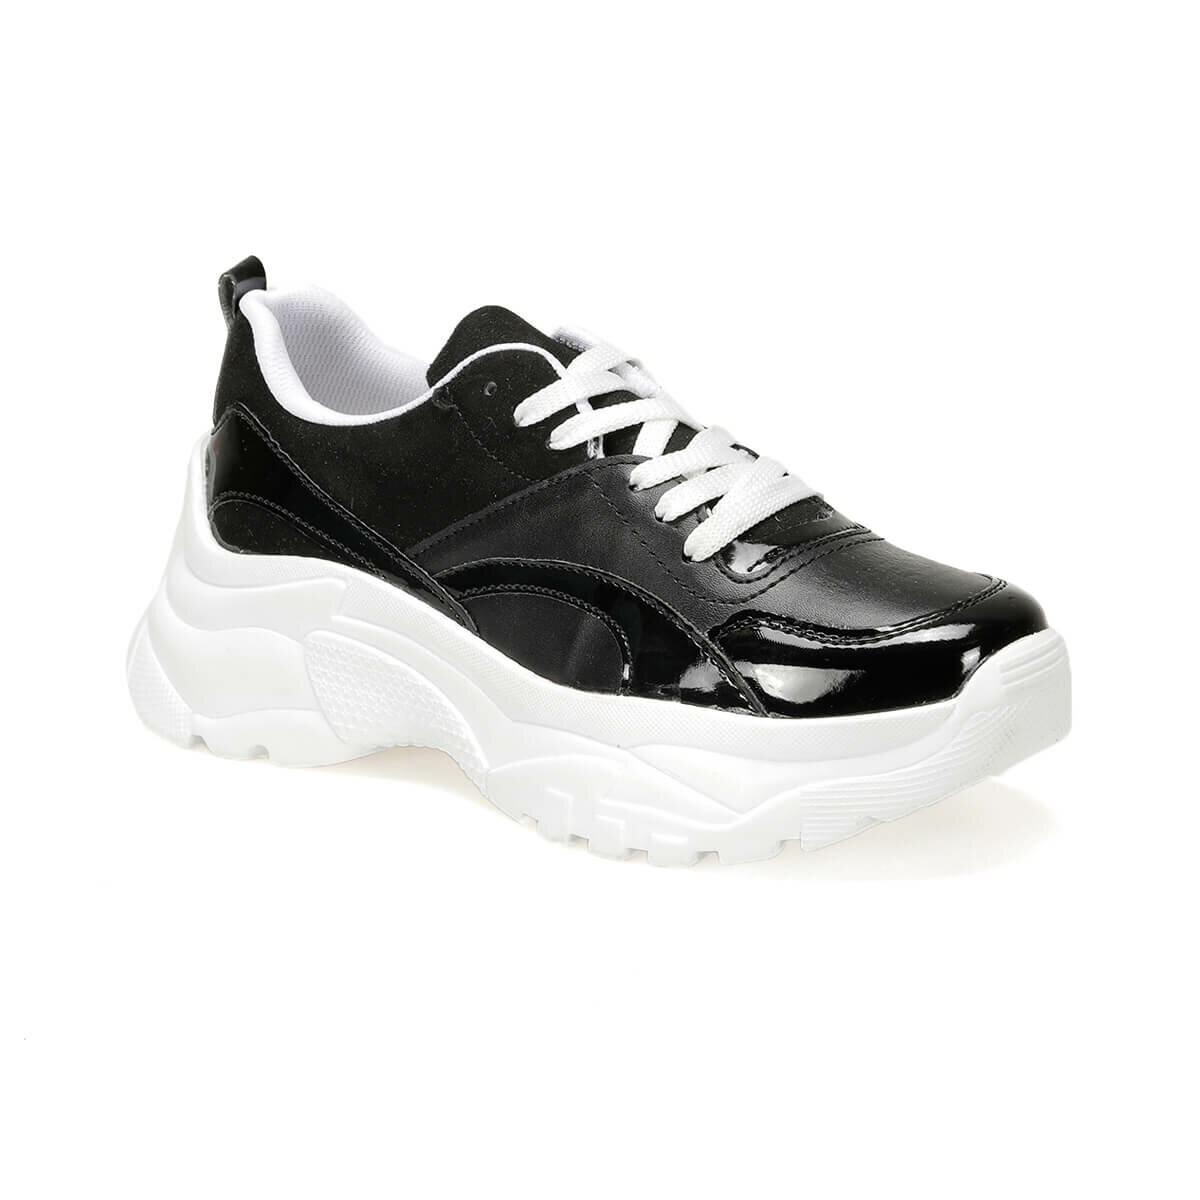 FLO ESLEM85Z SKIN Black Women 'S Sneaker Shoes BUTIGO